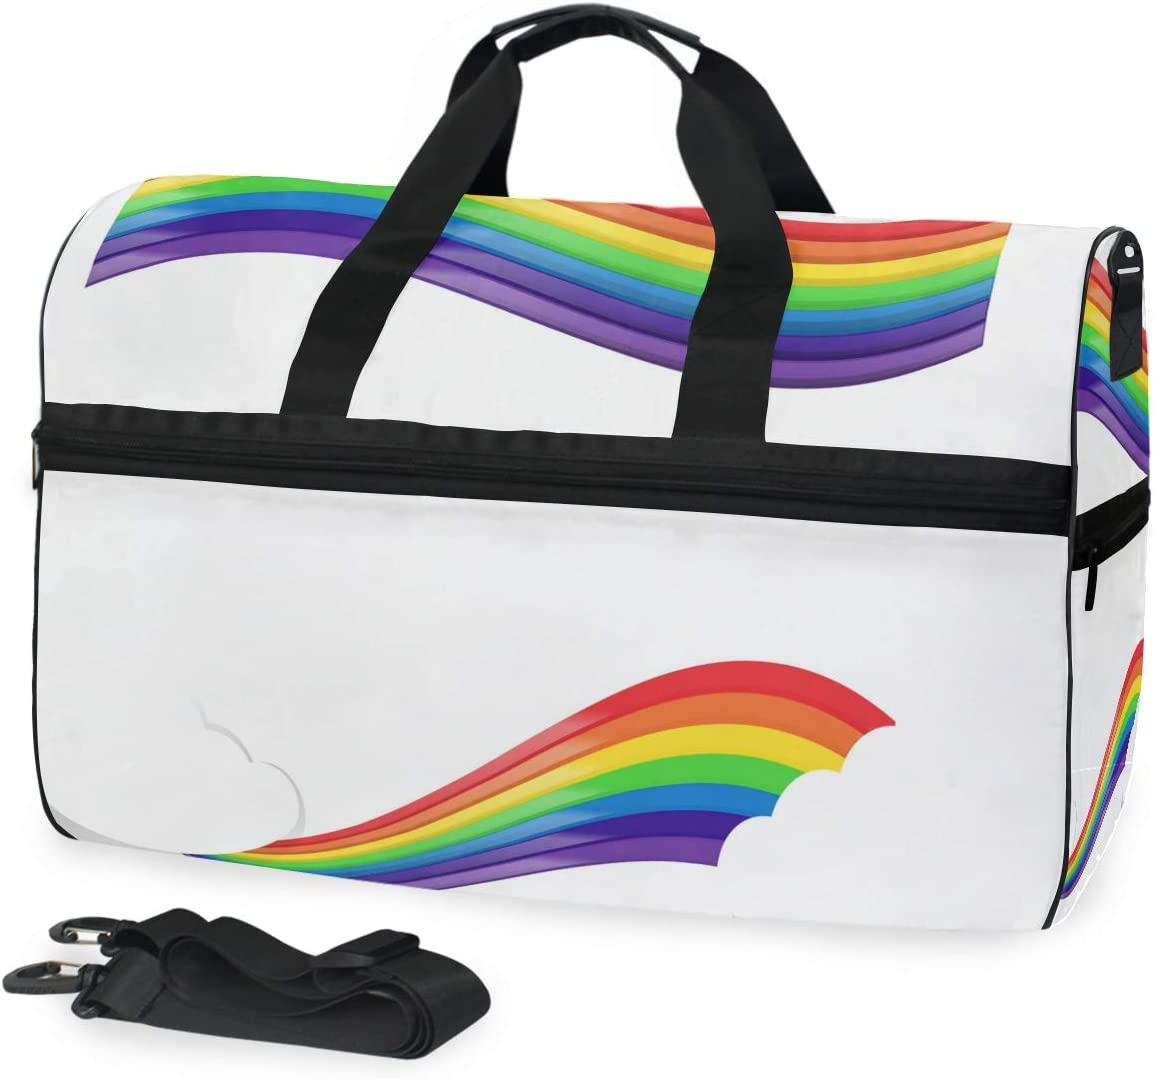 FANTAZIO Rainbow Band Sports Bag Packable Travel Duffle Bag Lightweight Water Resistant Tear Resistant